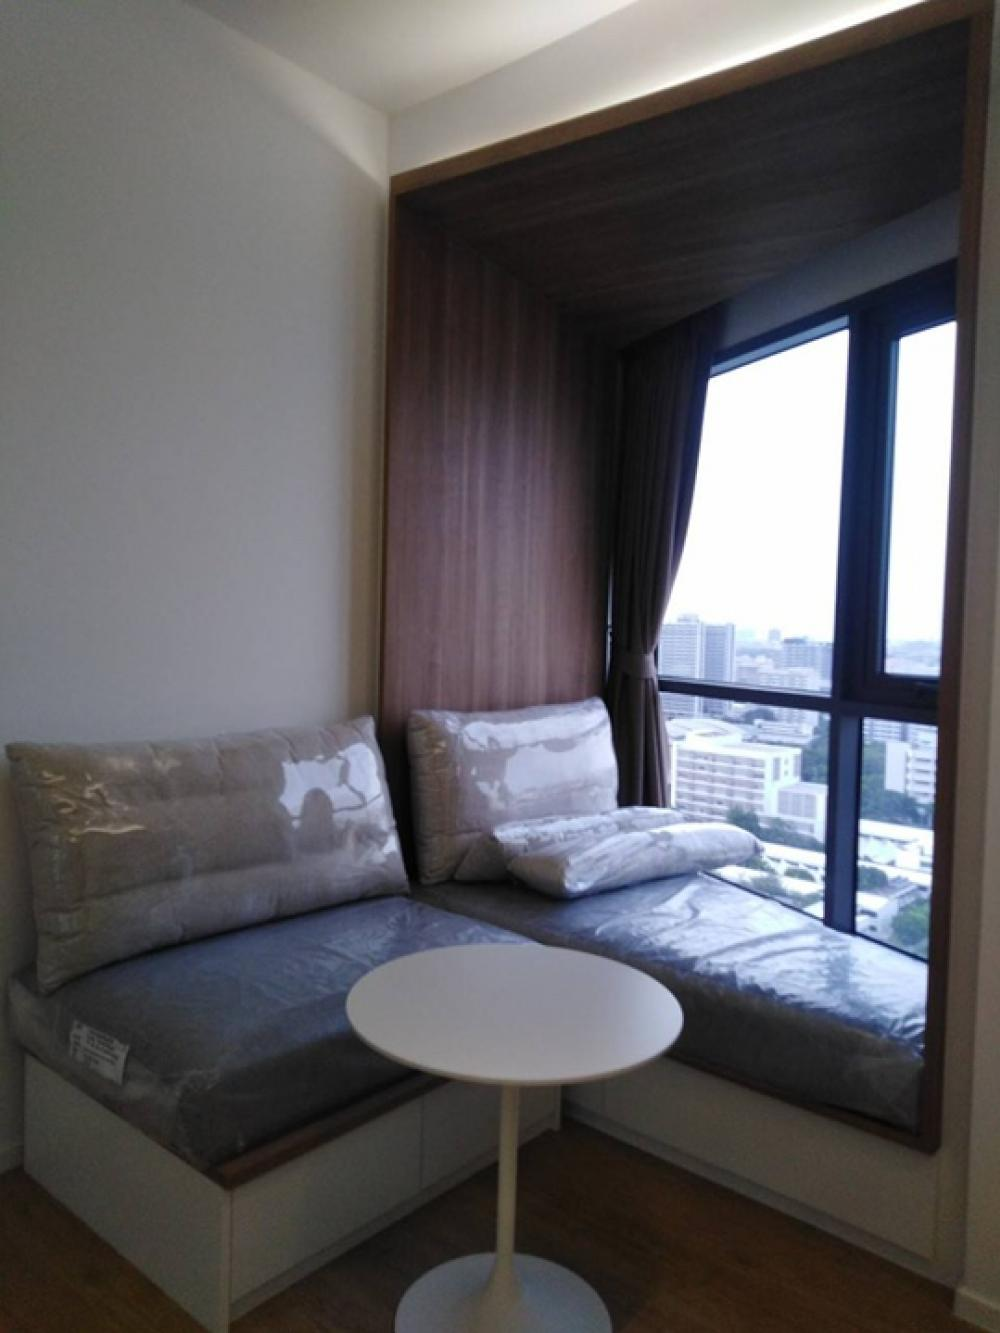 For RentCondoSiam Paragon ,Chulalongkorn,Samyan : For rent, Triple Y Residence, 1 bedroom, never been rented, ready, end of August 63, contact 082-459-4297